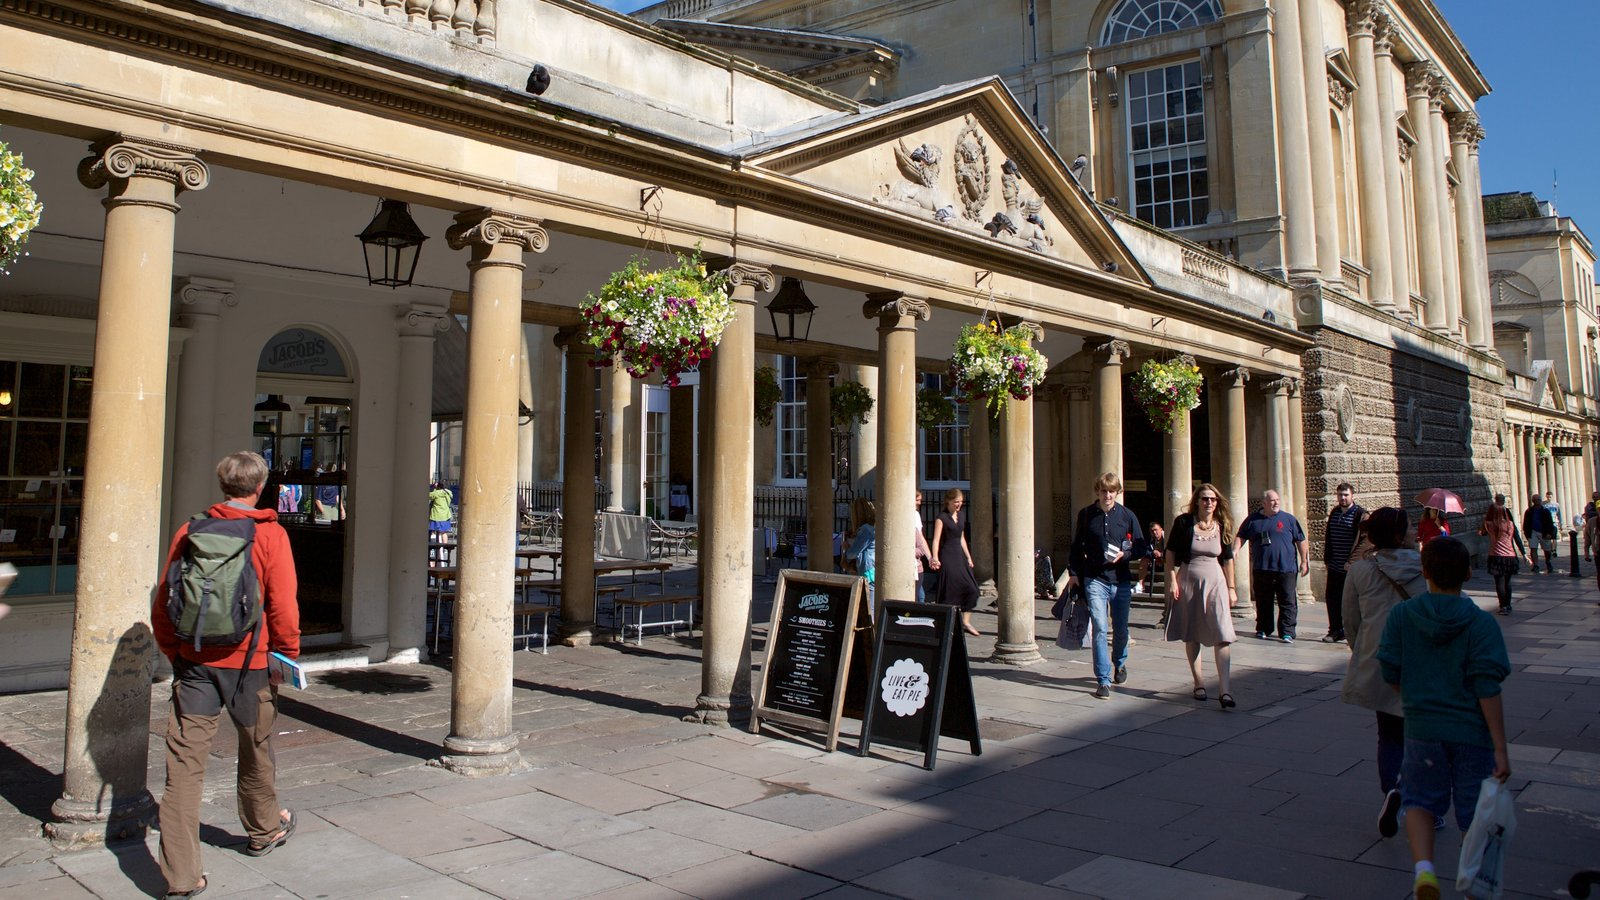 Bath featuring street scenes, cafe scenes and heritage architecture